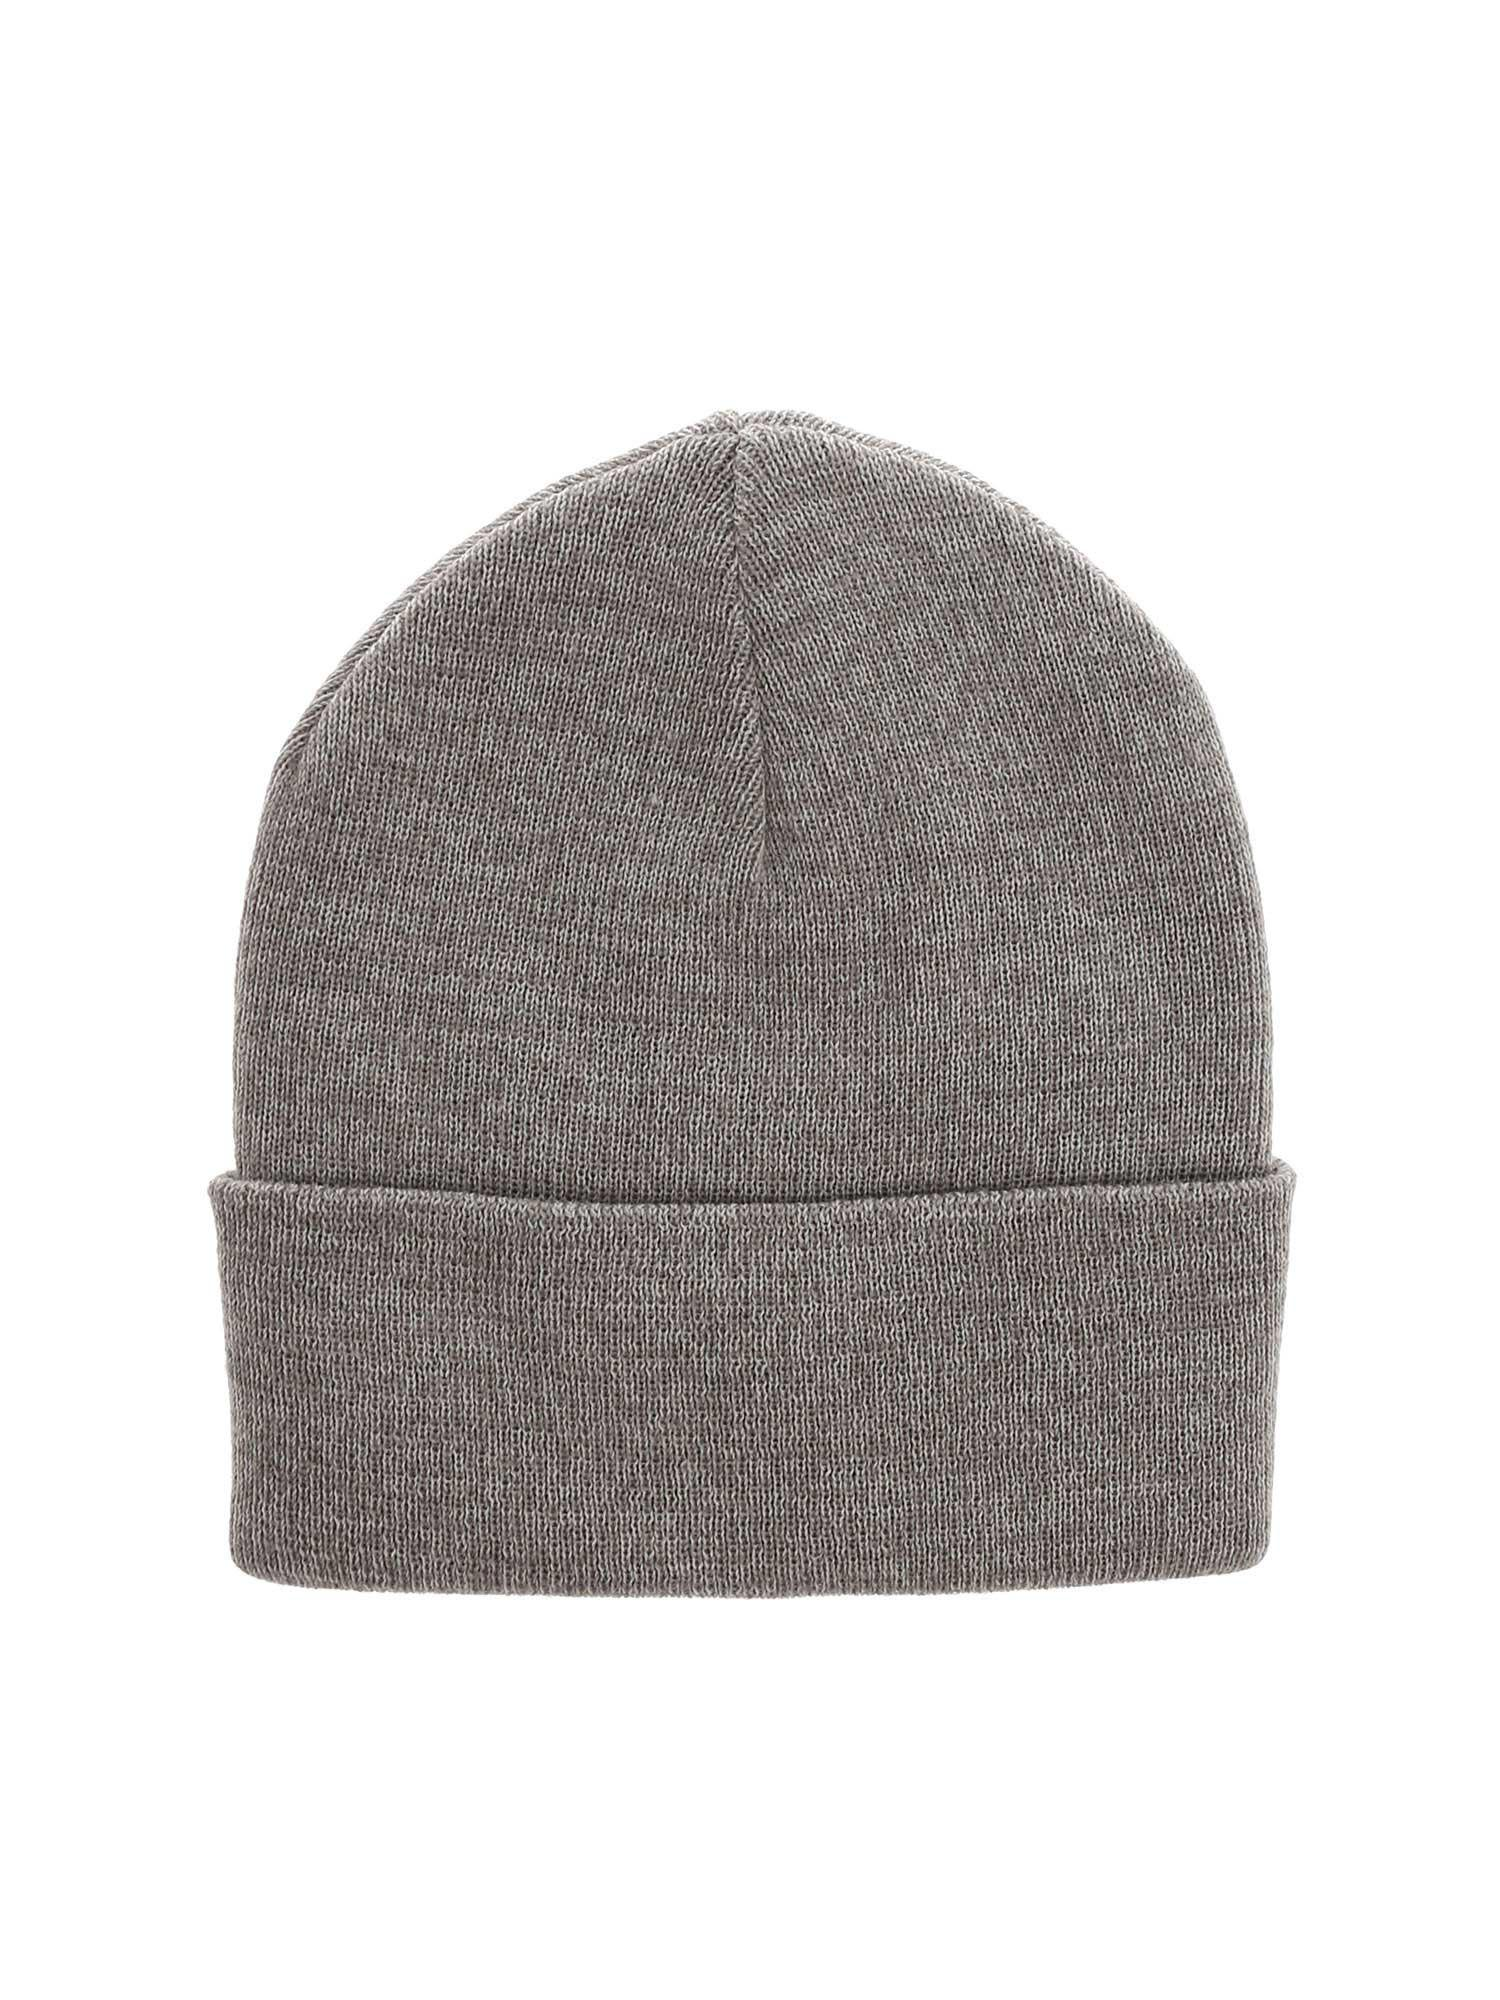 ec4efdbb1a4 Lyst - Y-3 Grey Merino Wool Logo Beanie in Gray for Men